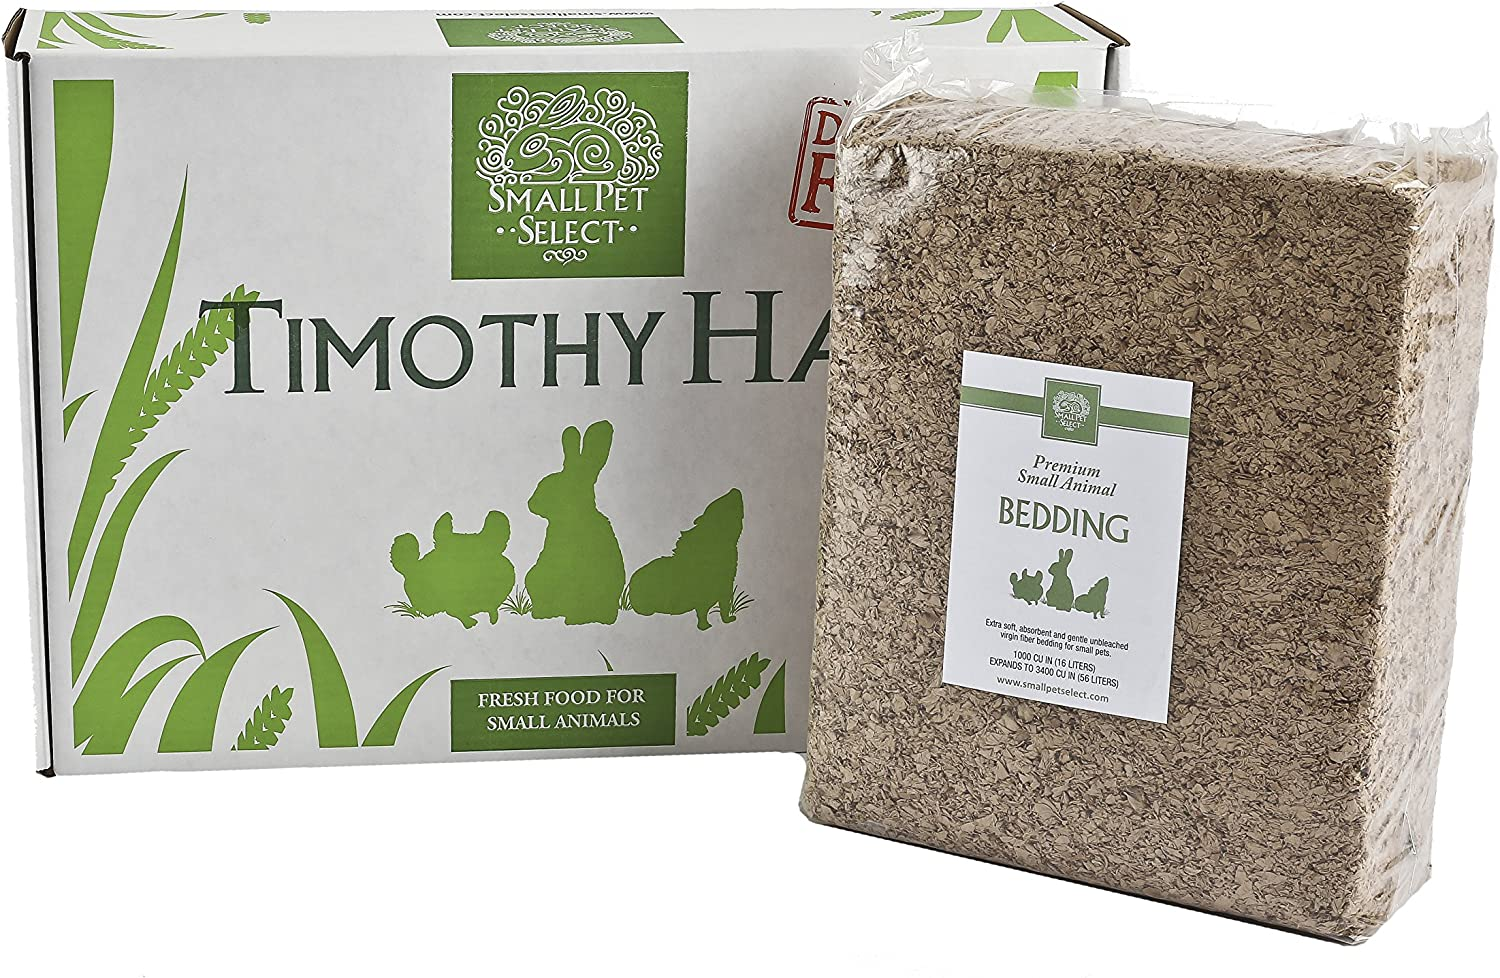 Small Pet Select Timothy Hay and Bedding Combo Pack